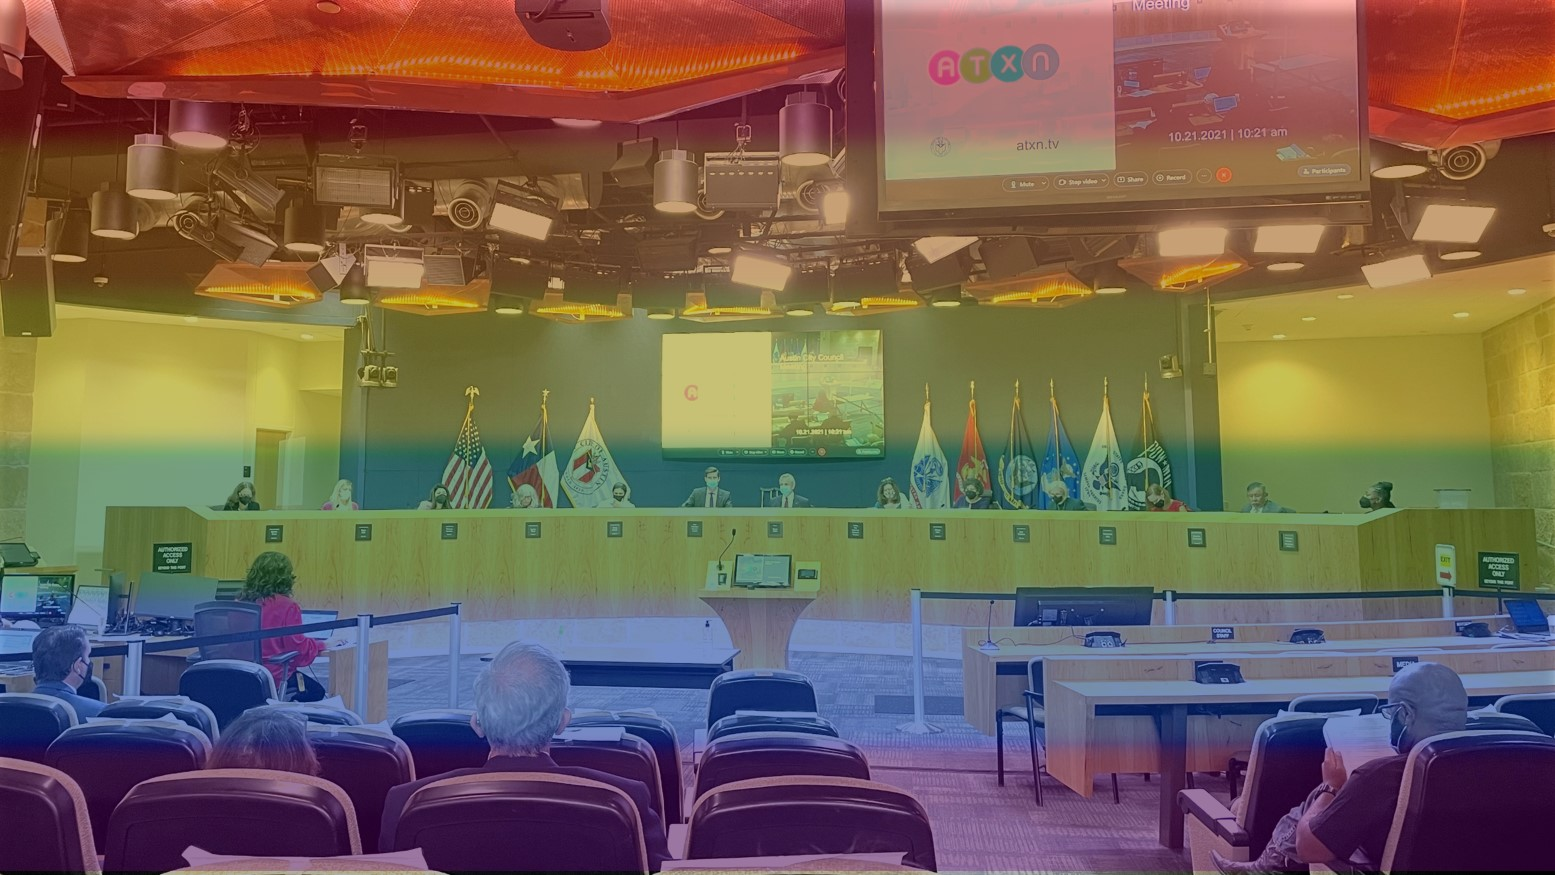 A photo of Austin City Council in rainbow colors